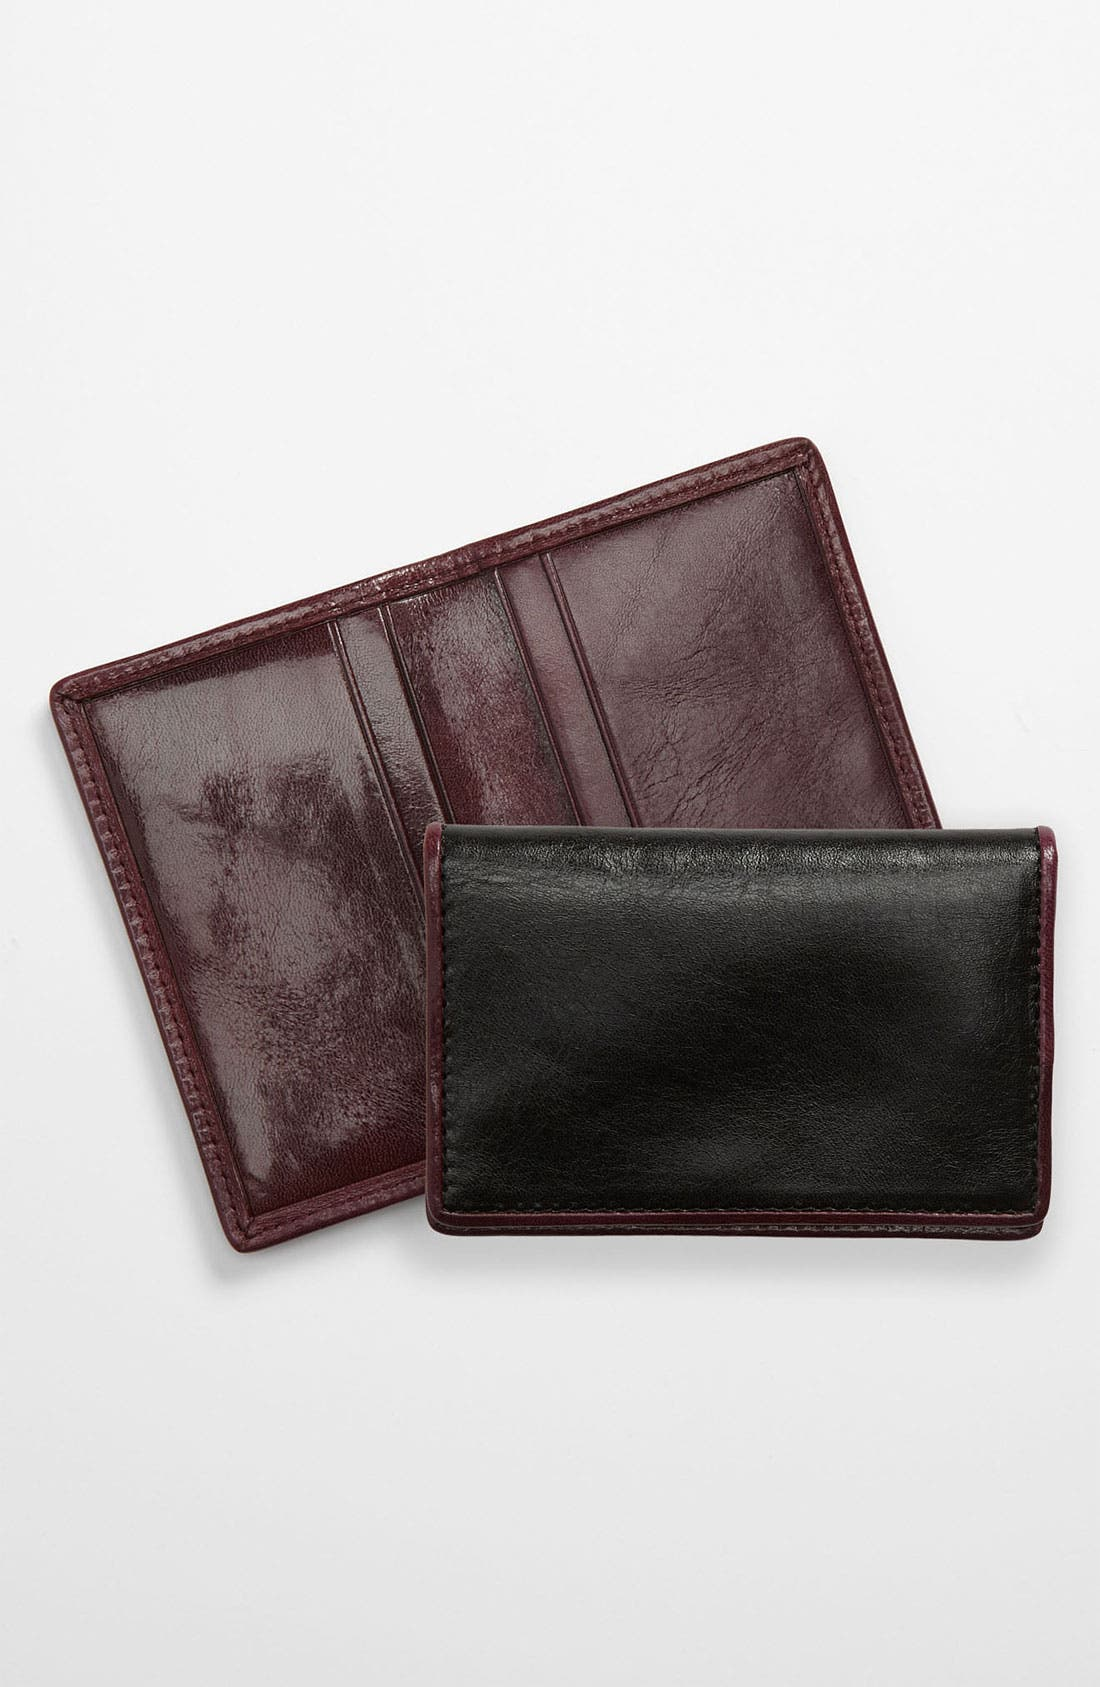 Main Image - Bosca 'Small' Card Case